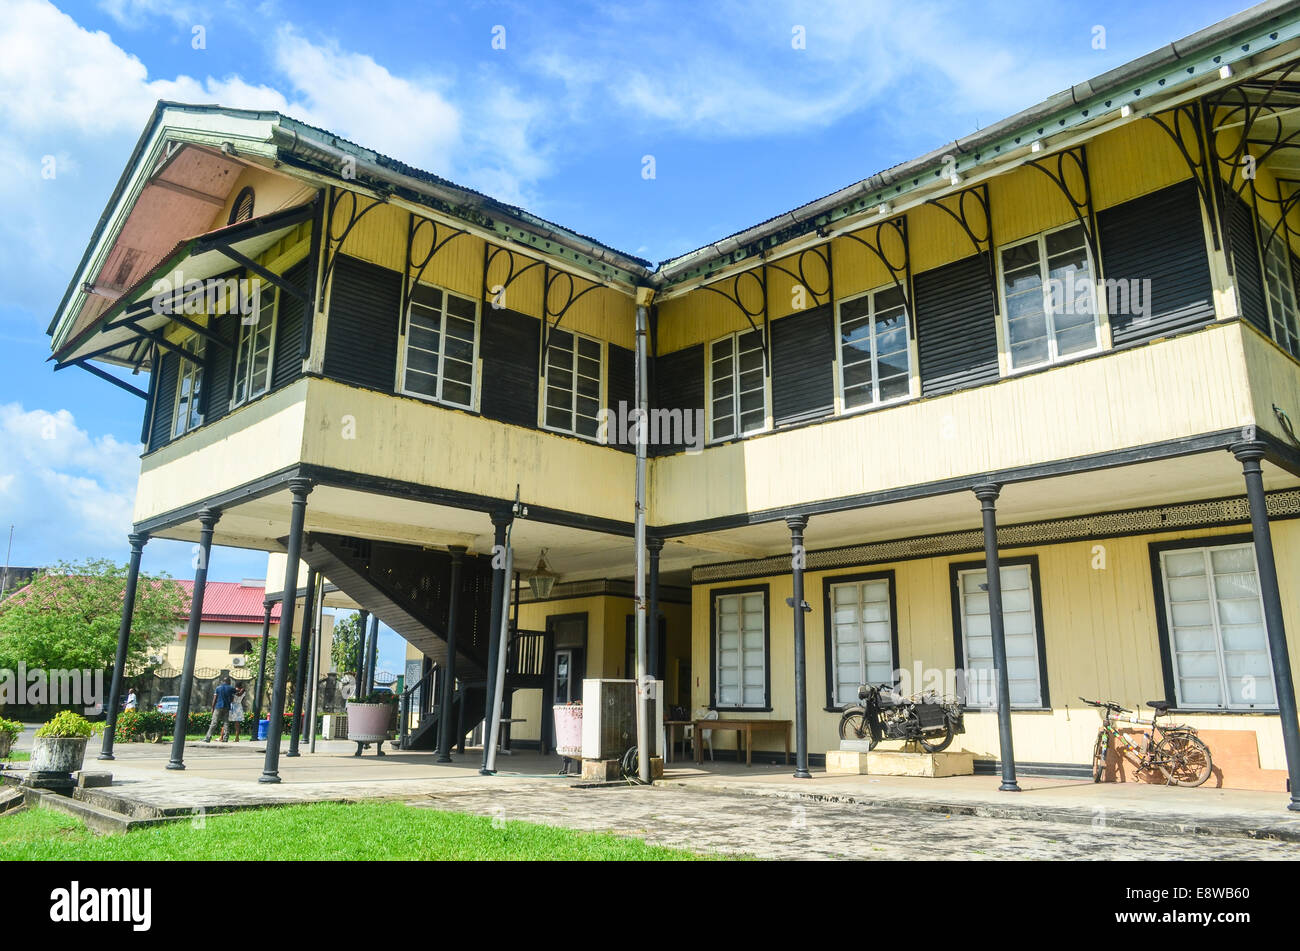 Museum of Calabar, Nigeria, in a former British colonial administrative building - Stock Image